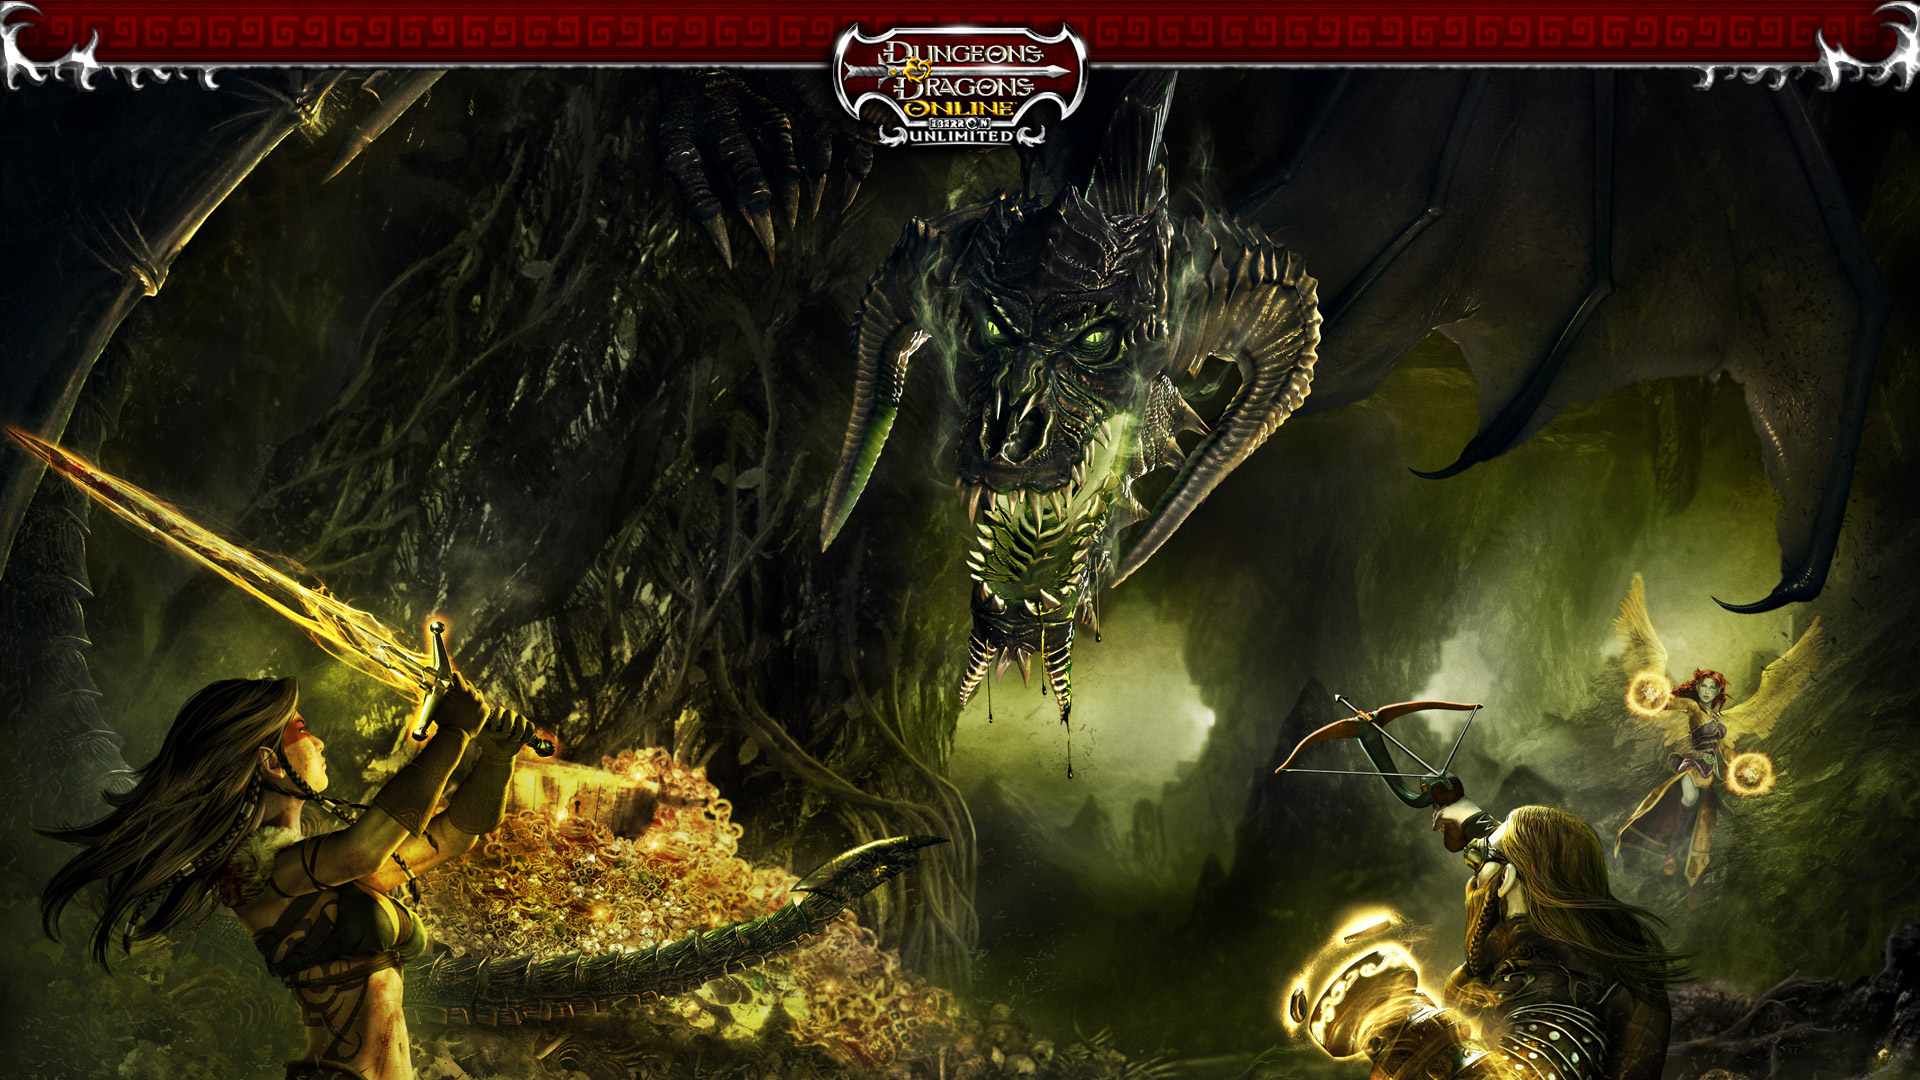 Free Dungeons & Dragons Online Wallpaper in 1920x1080